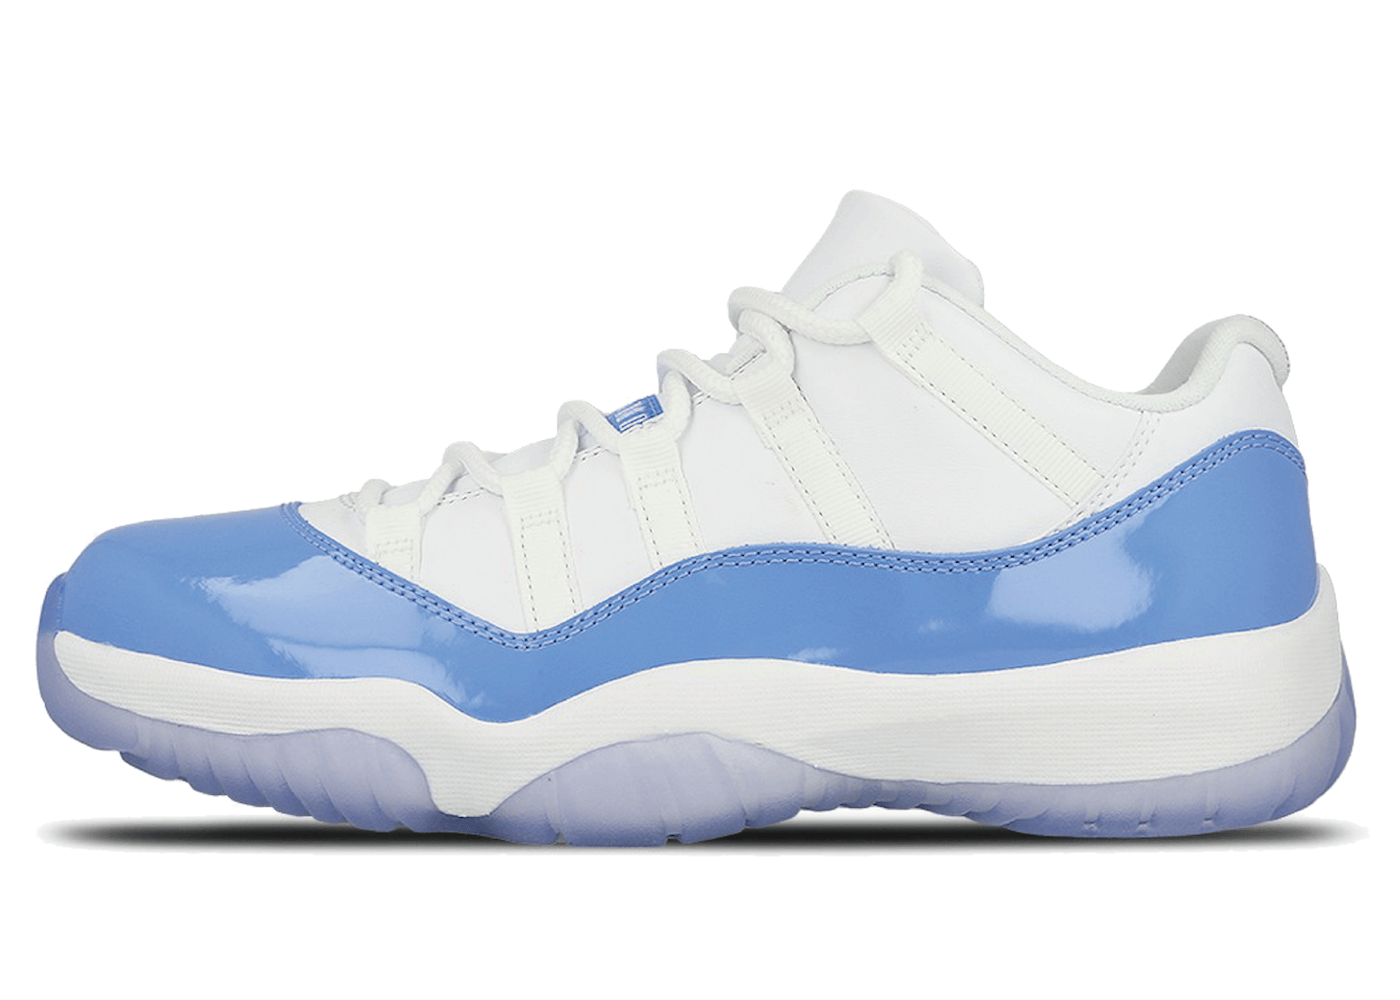 Jordan 11 Retro Low University Blue (2017)の写真